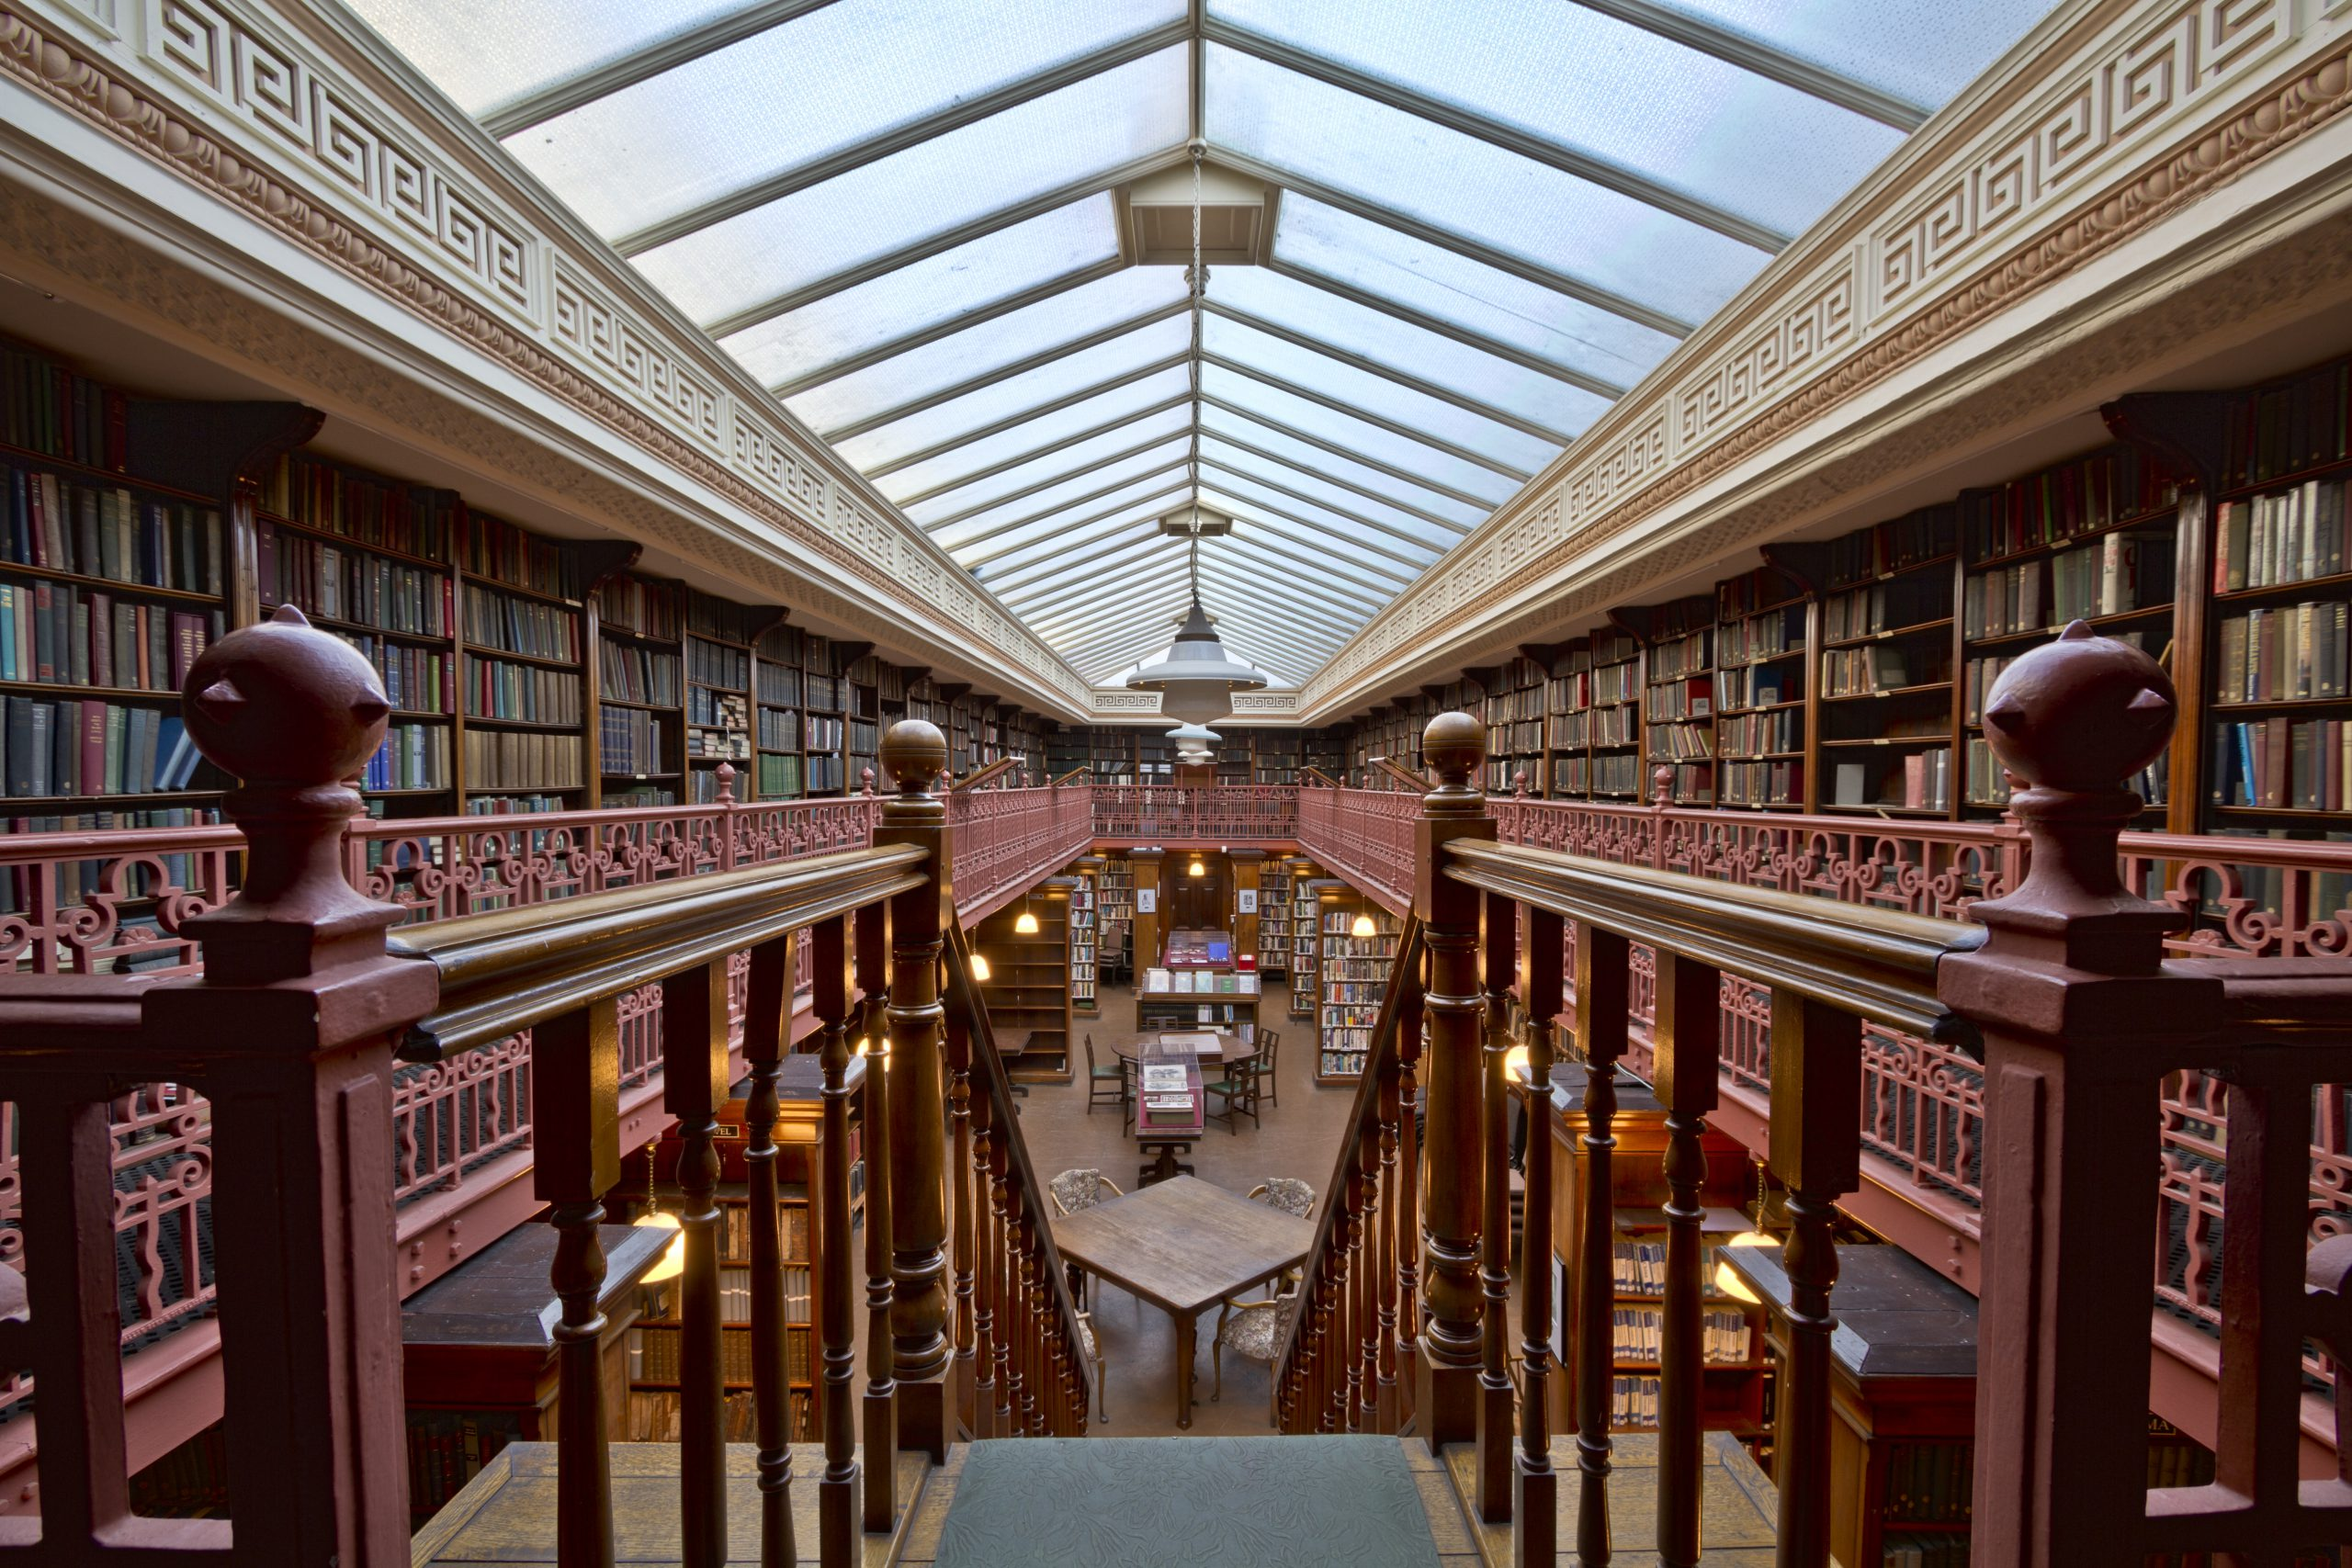 An image of the Brotherton Library. Taken looking down the staircase.